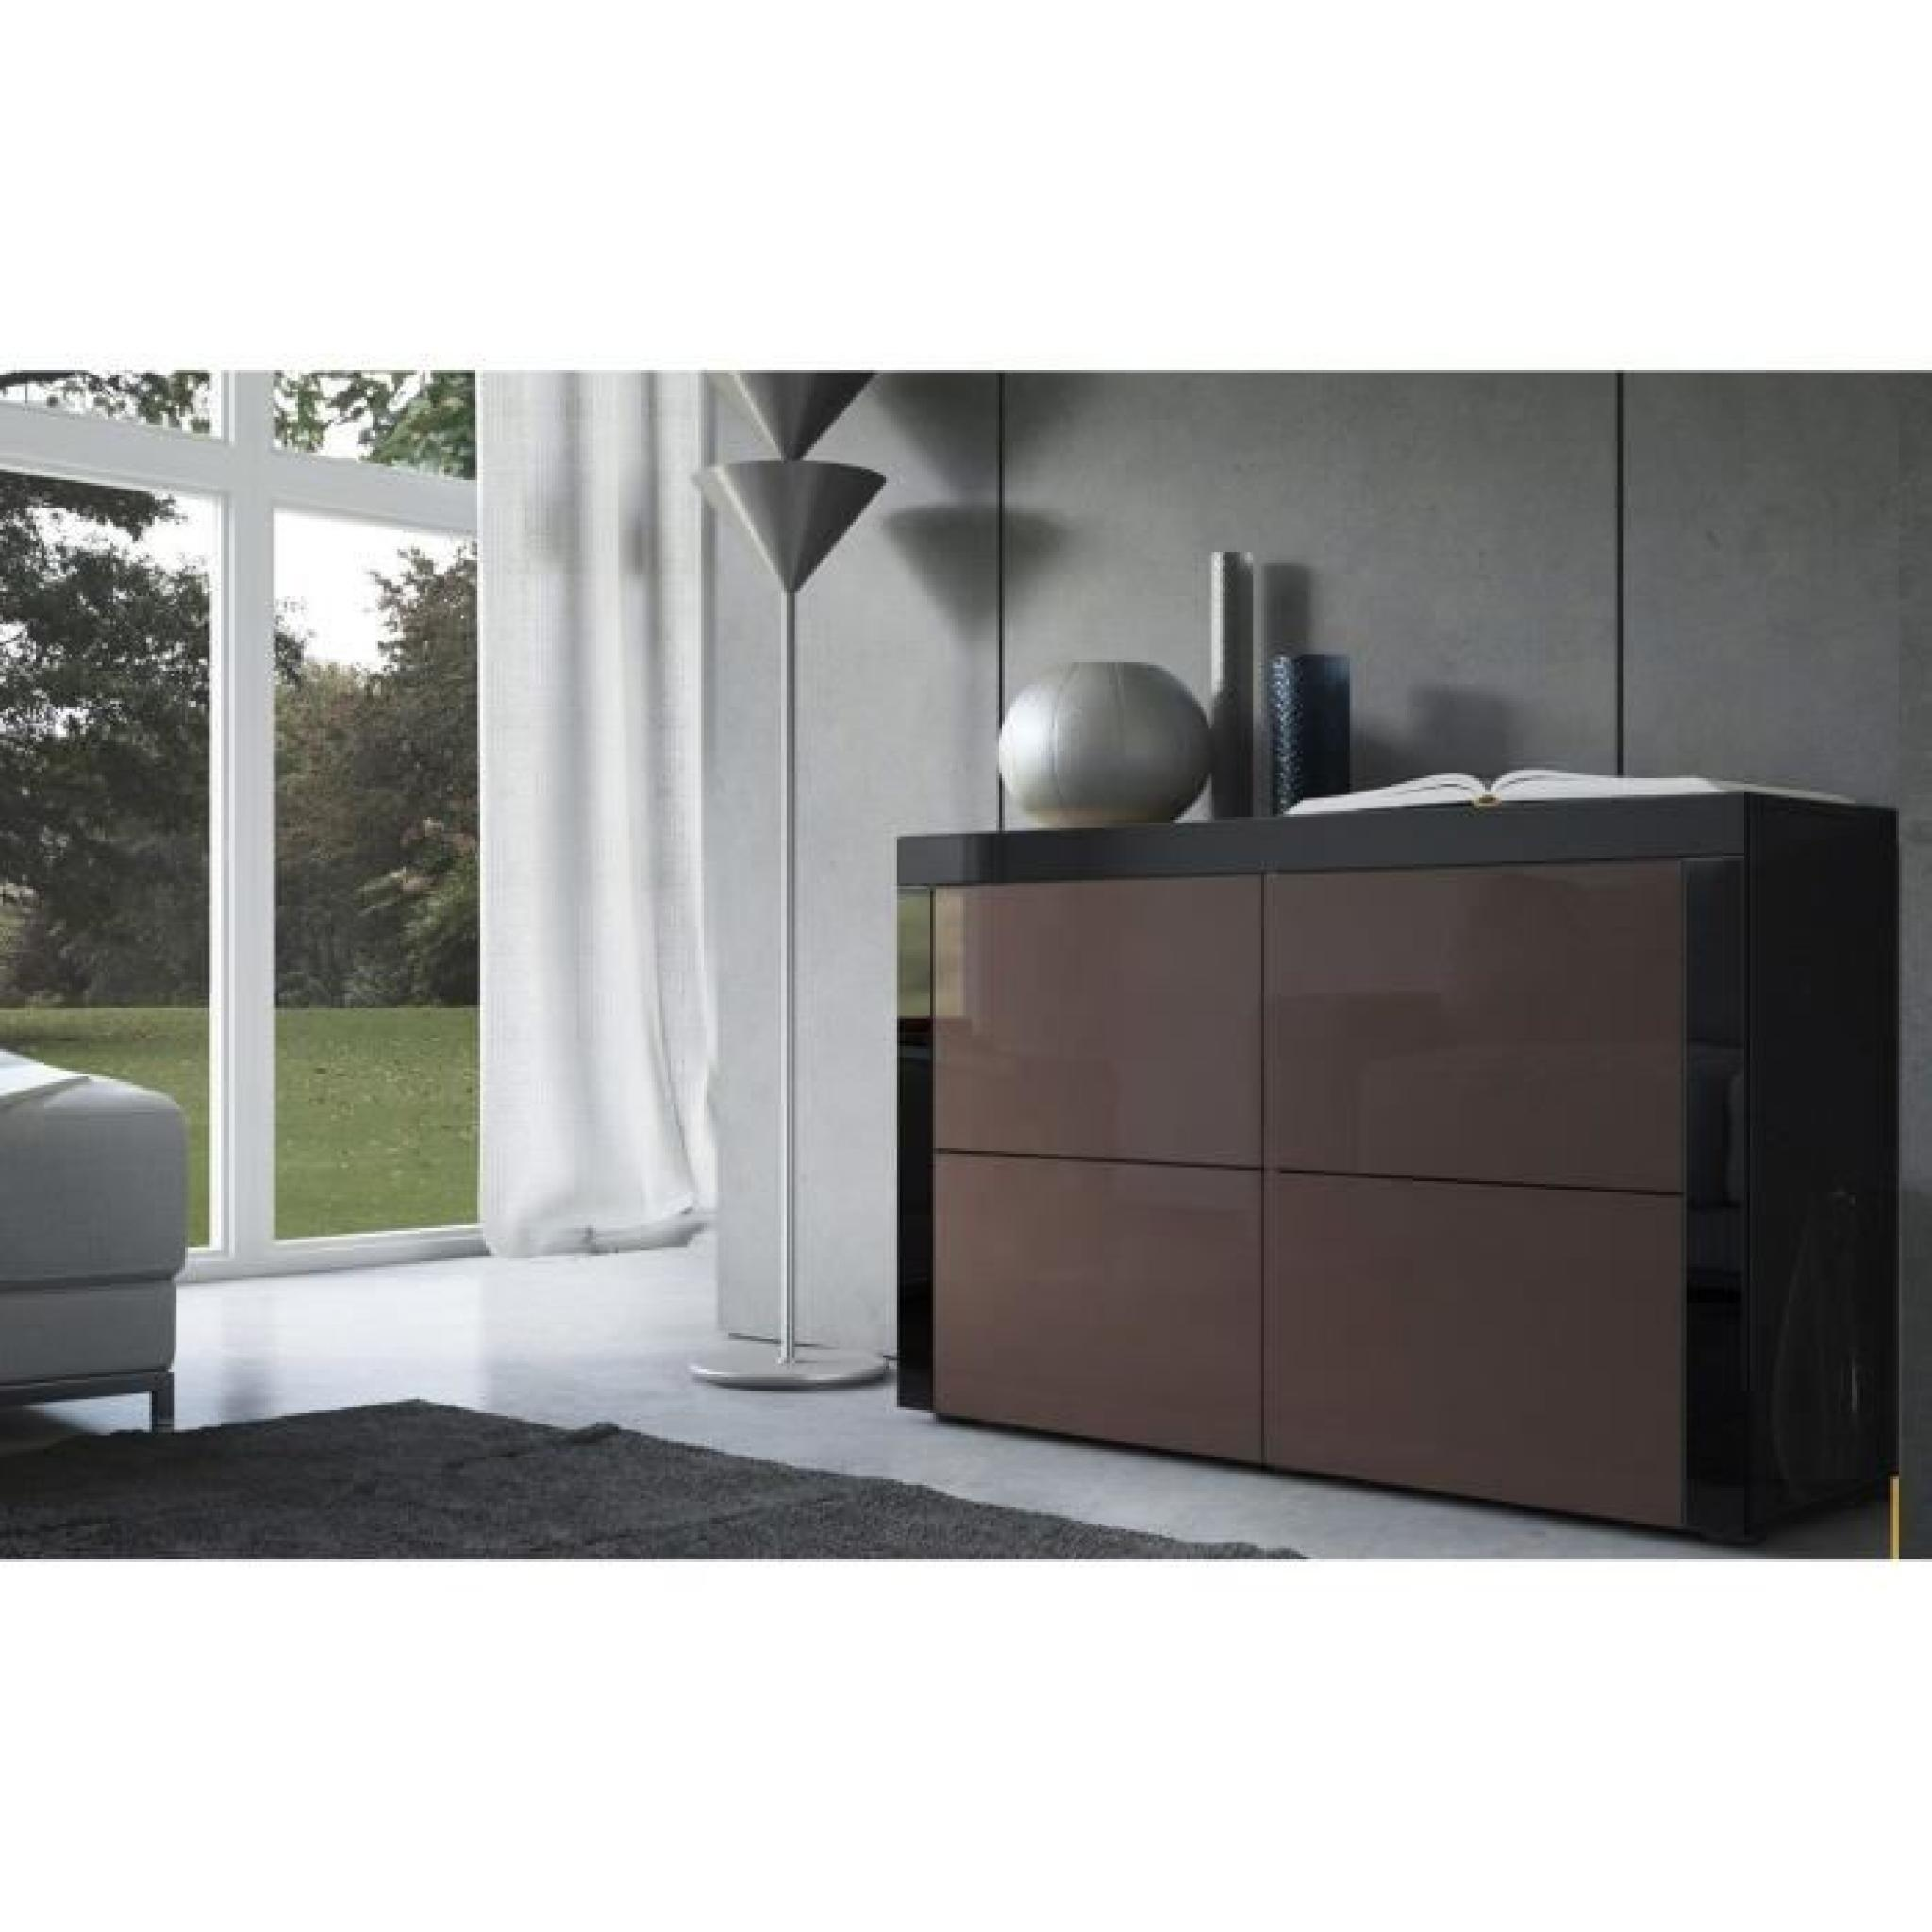 commode laqu e noir et chocolat achat vente commode pas cher couleur et. Black Bedroom Furniture Sets. Home Design Ideas